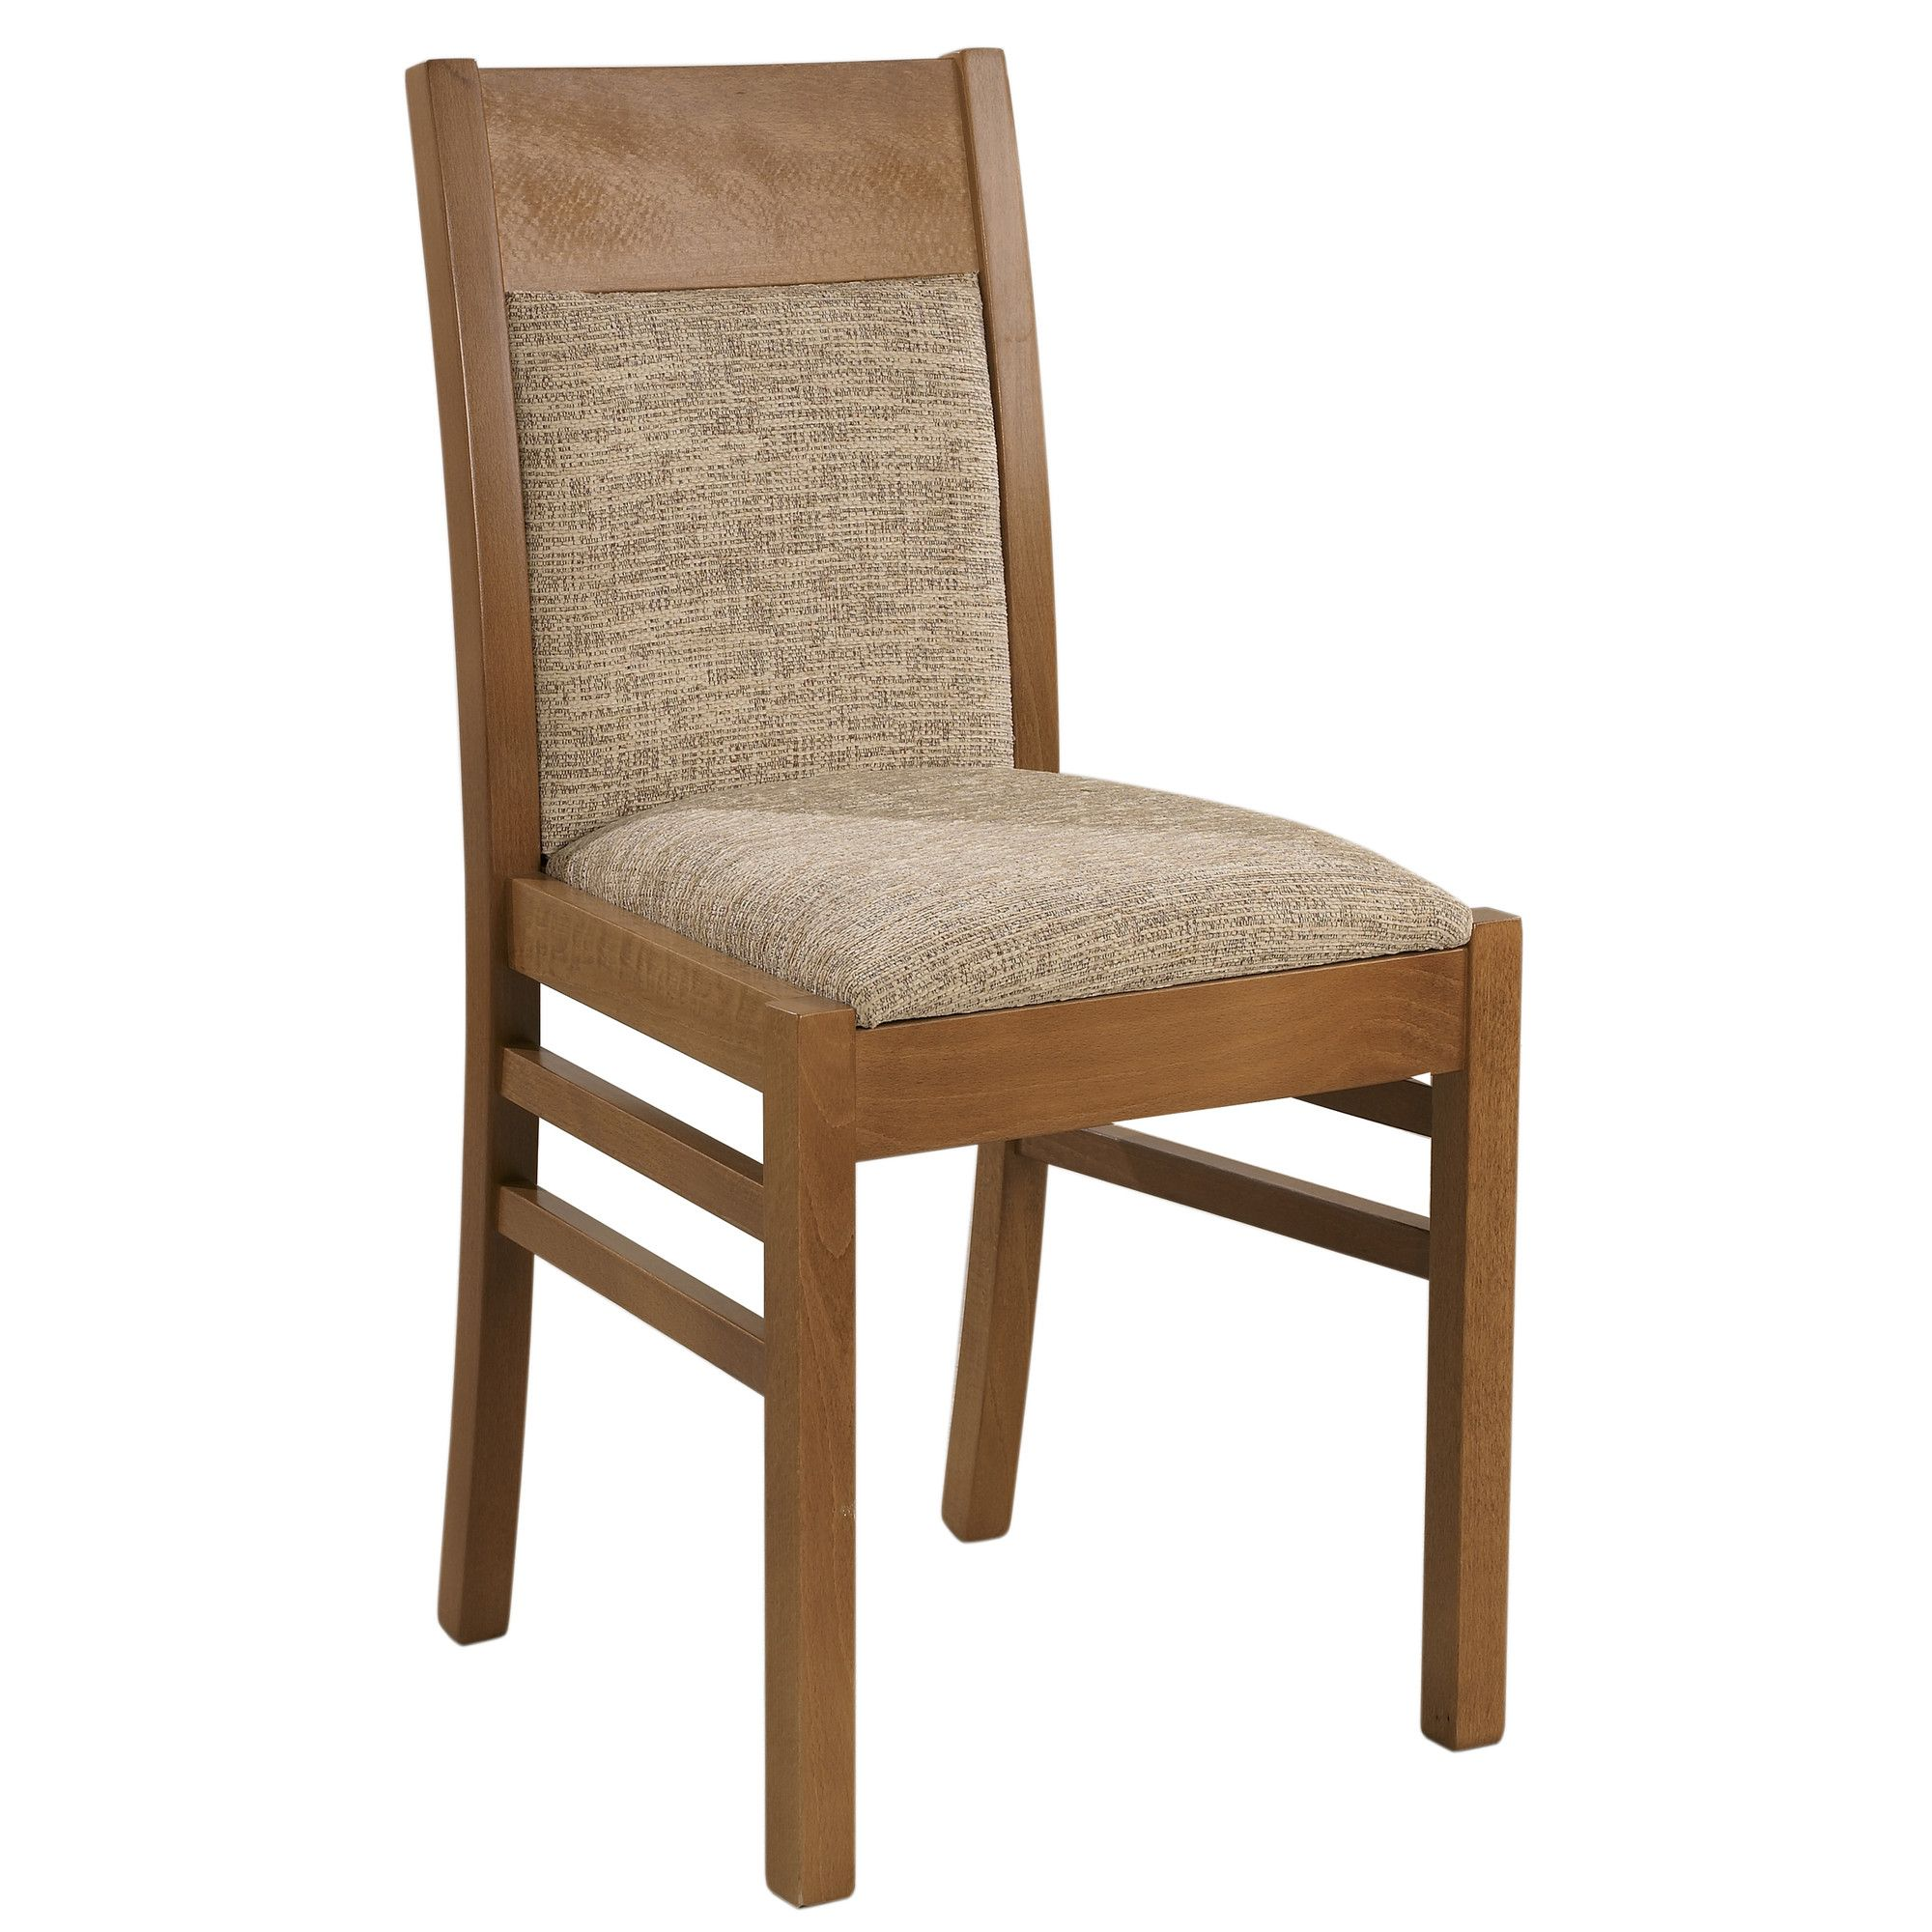 Sutcliffe Furniture Casual Dining Arley Upholstered Dining Chair (Set of 2) - Chocolate - English Oak